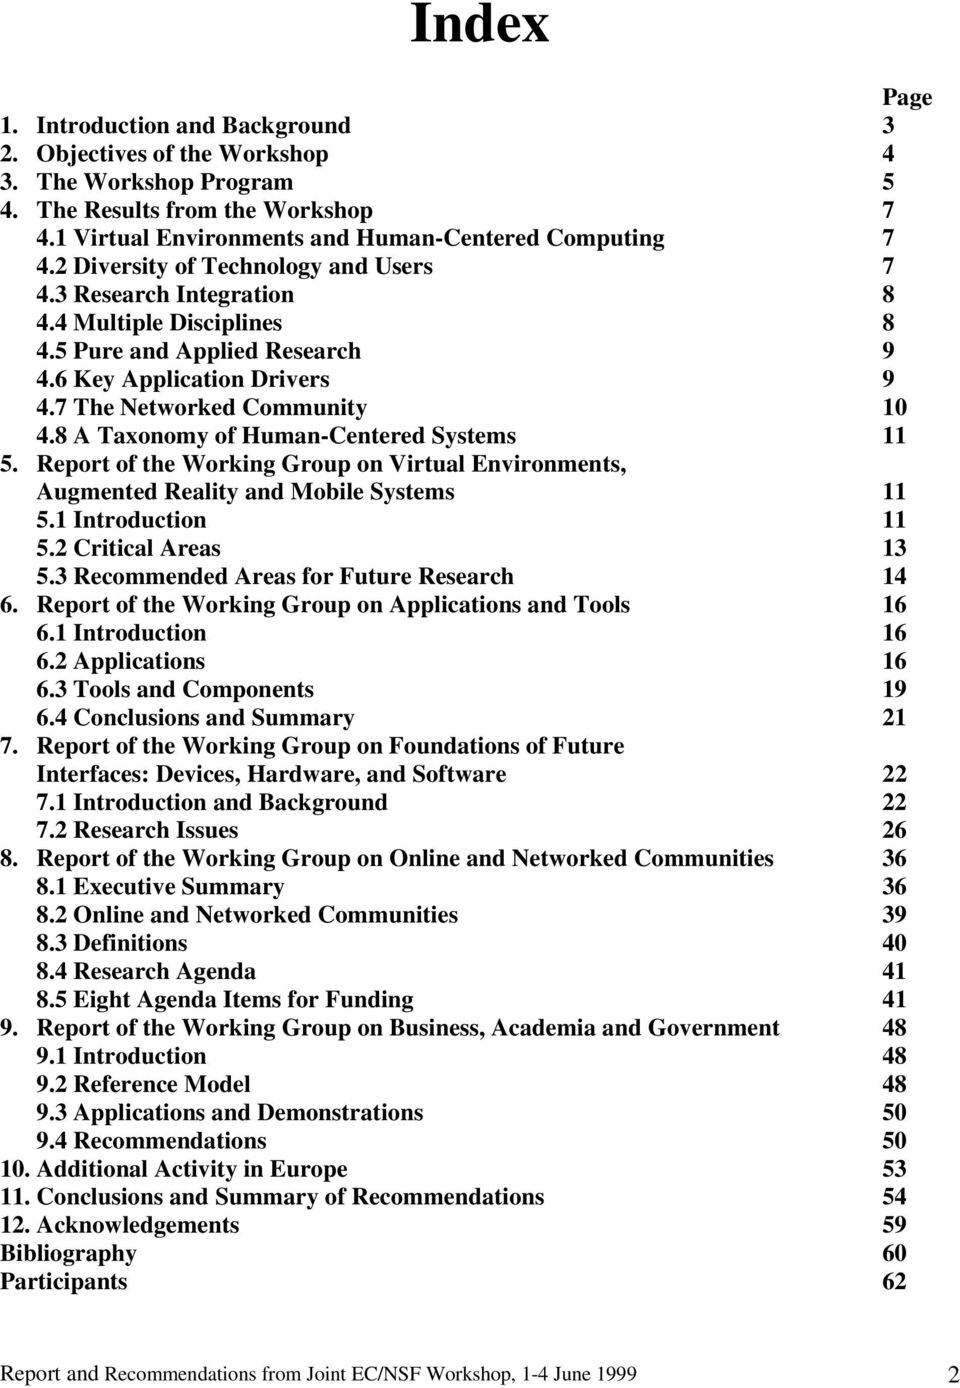 8 A Taxonomy of Human-Centered Systems 11 5. Report of the Working Group on Virtual Environments, Augmented Reality and Mobile Systems 11 5.1 Introduction 11 5.2 Critical Areas 13 5.